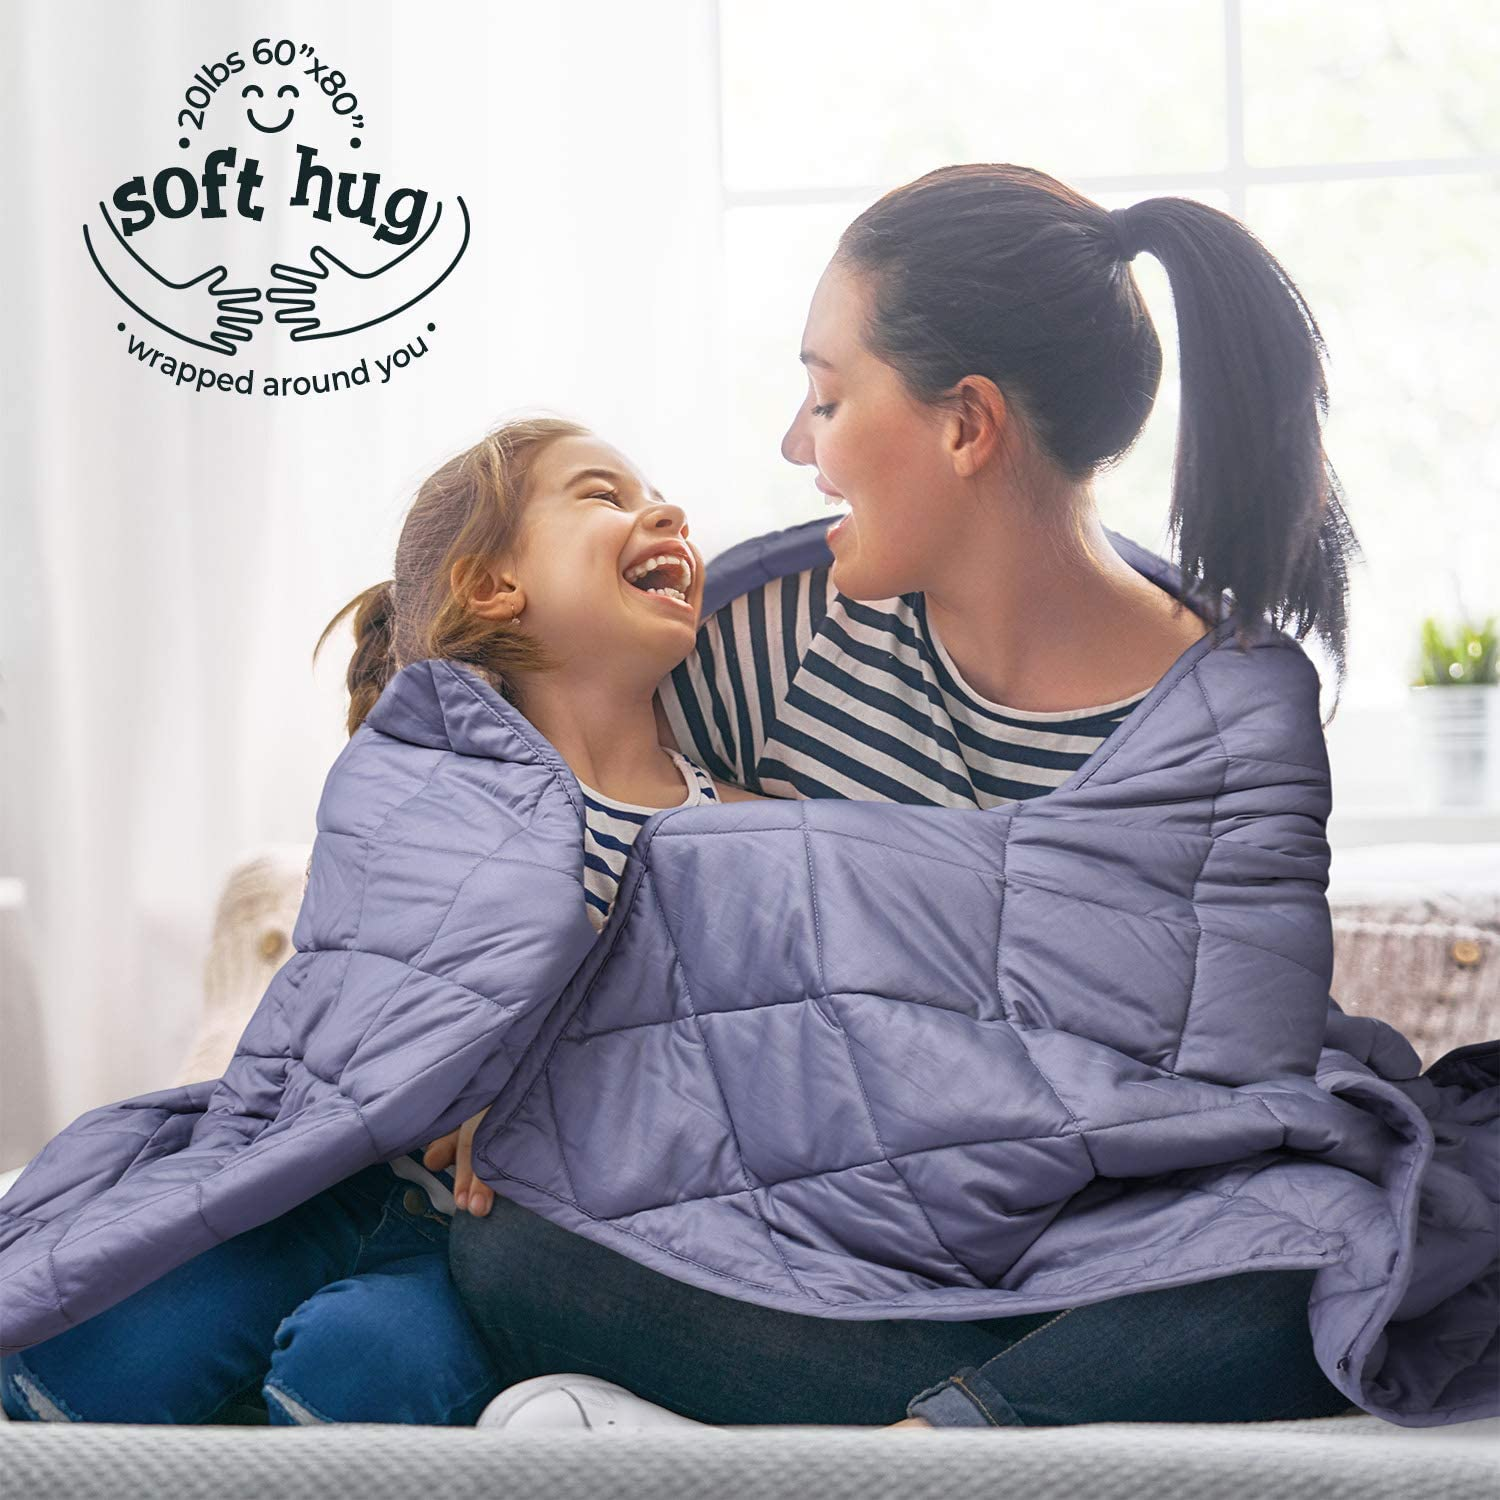 "Mooka Weighted Blanket 20lbs 60""x80"" Queen Size for Adults, 100% Cotton Material with Premium Glass Beads, for 160-280 lbs Individuals, Cooling Weighted Blanket for Restful Sleep, Grey"